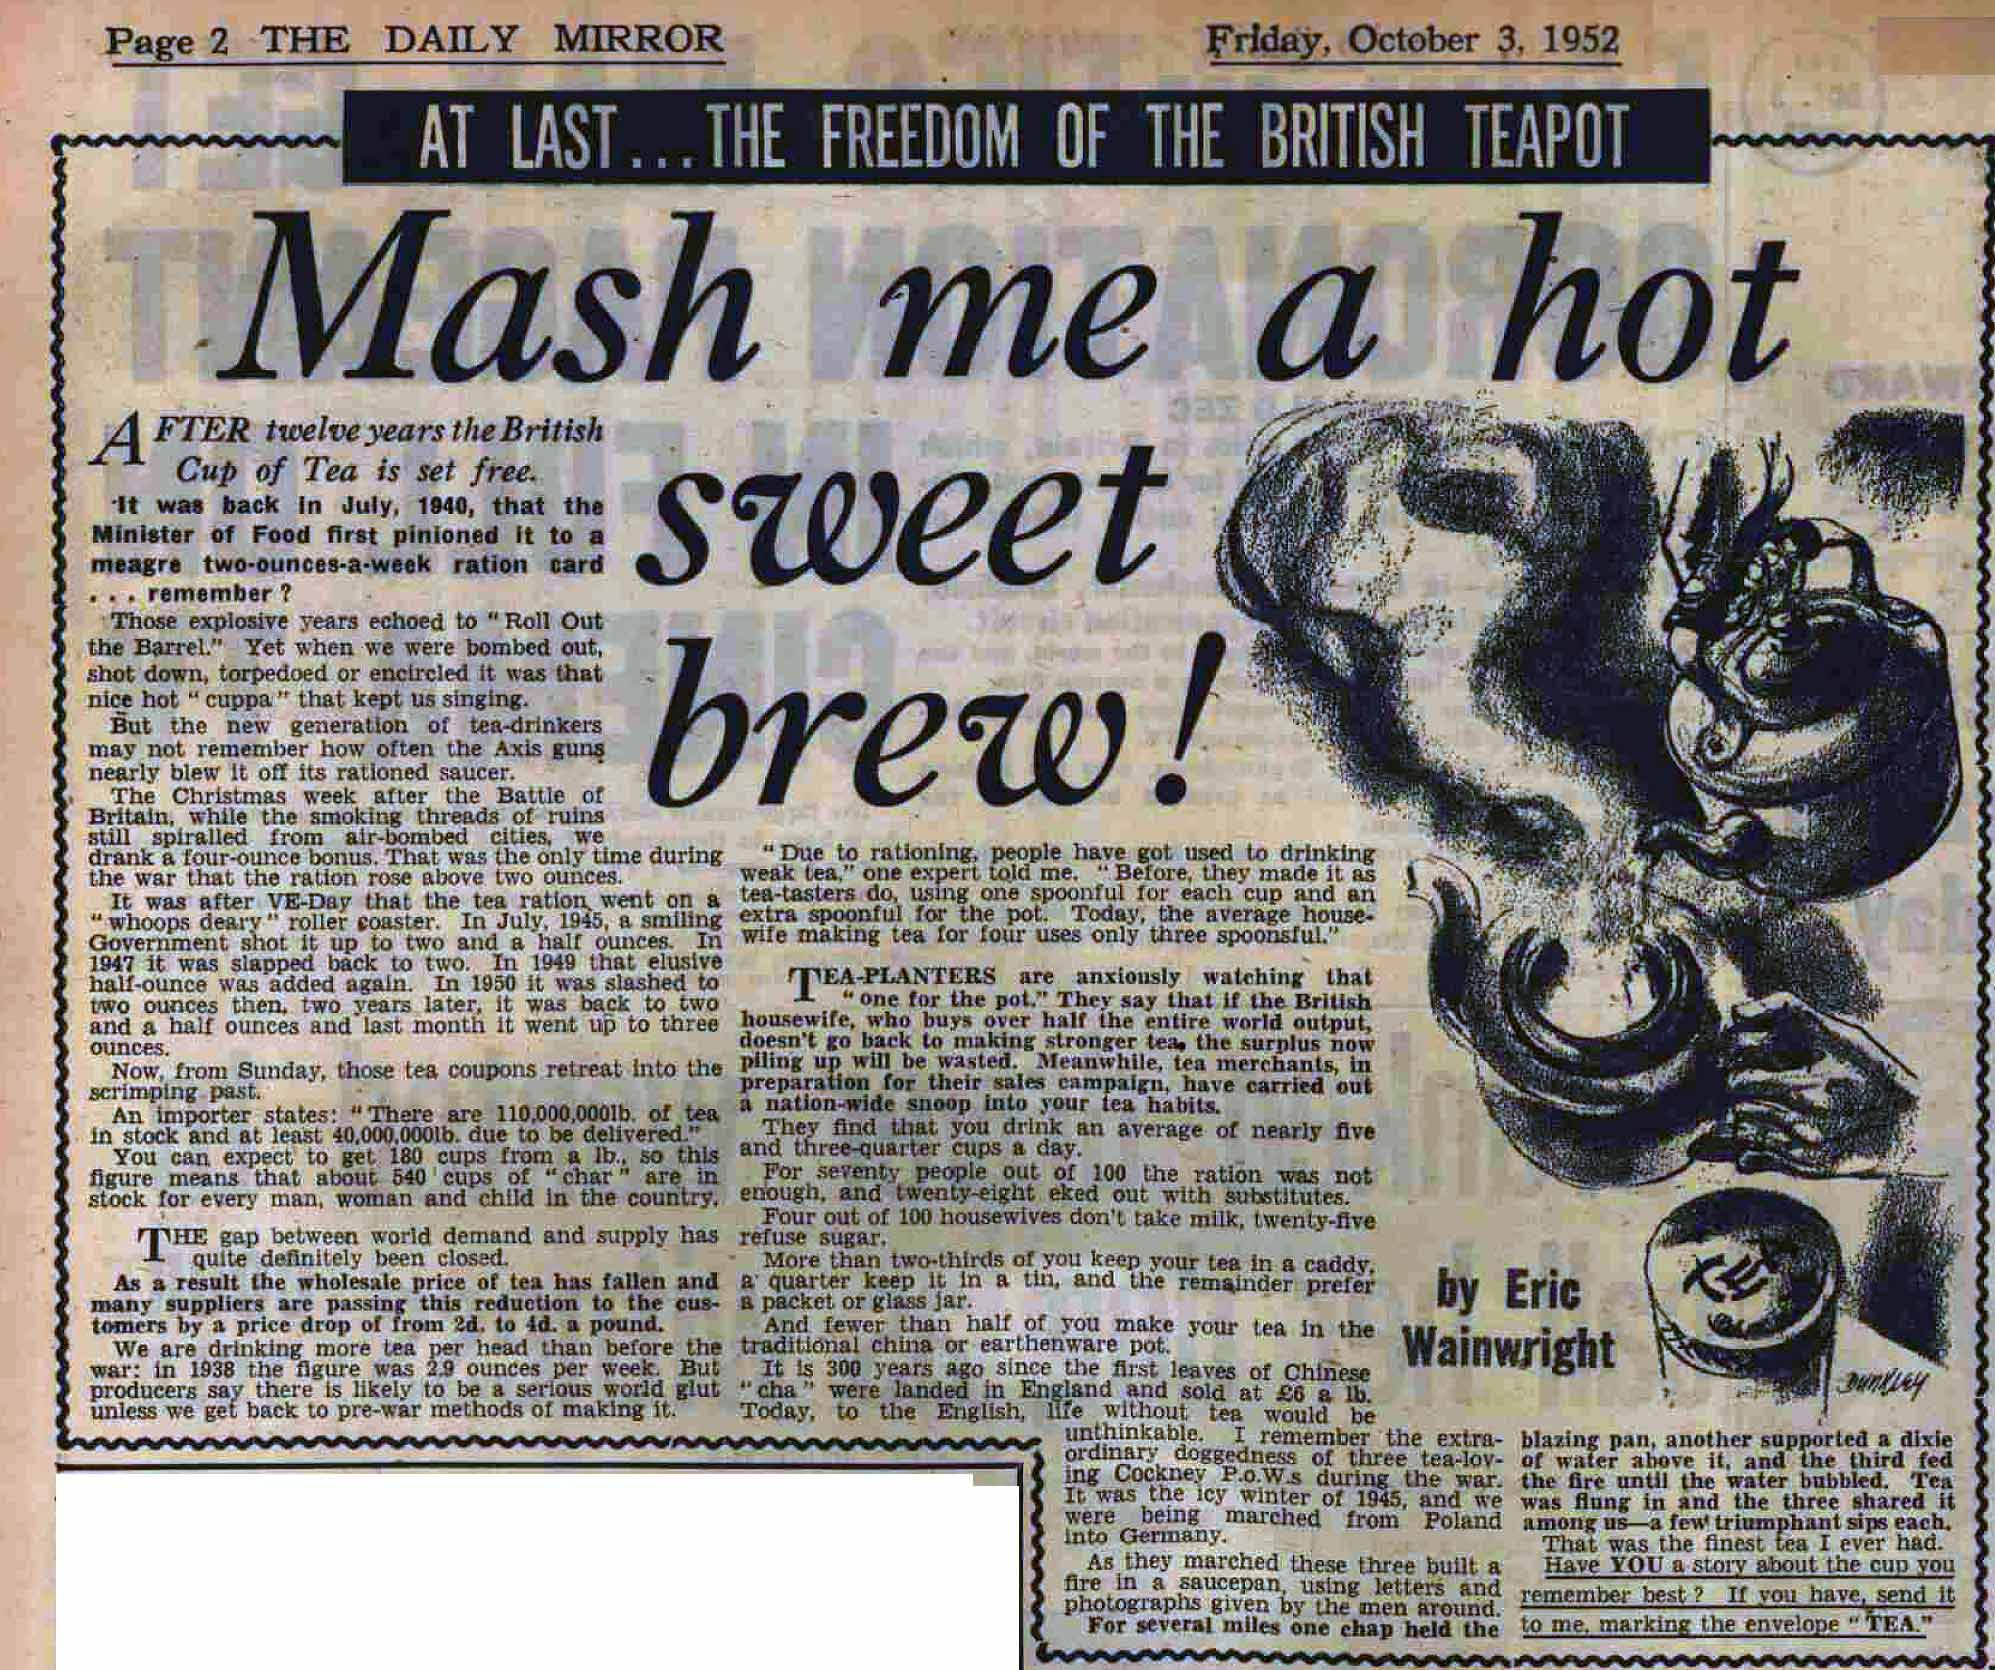 Wainright, Eric. Mash me a hot sweet cup of brew. Article on end of tea rationing, 1952